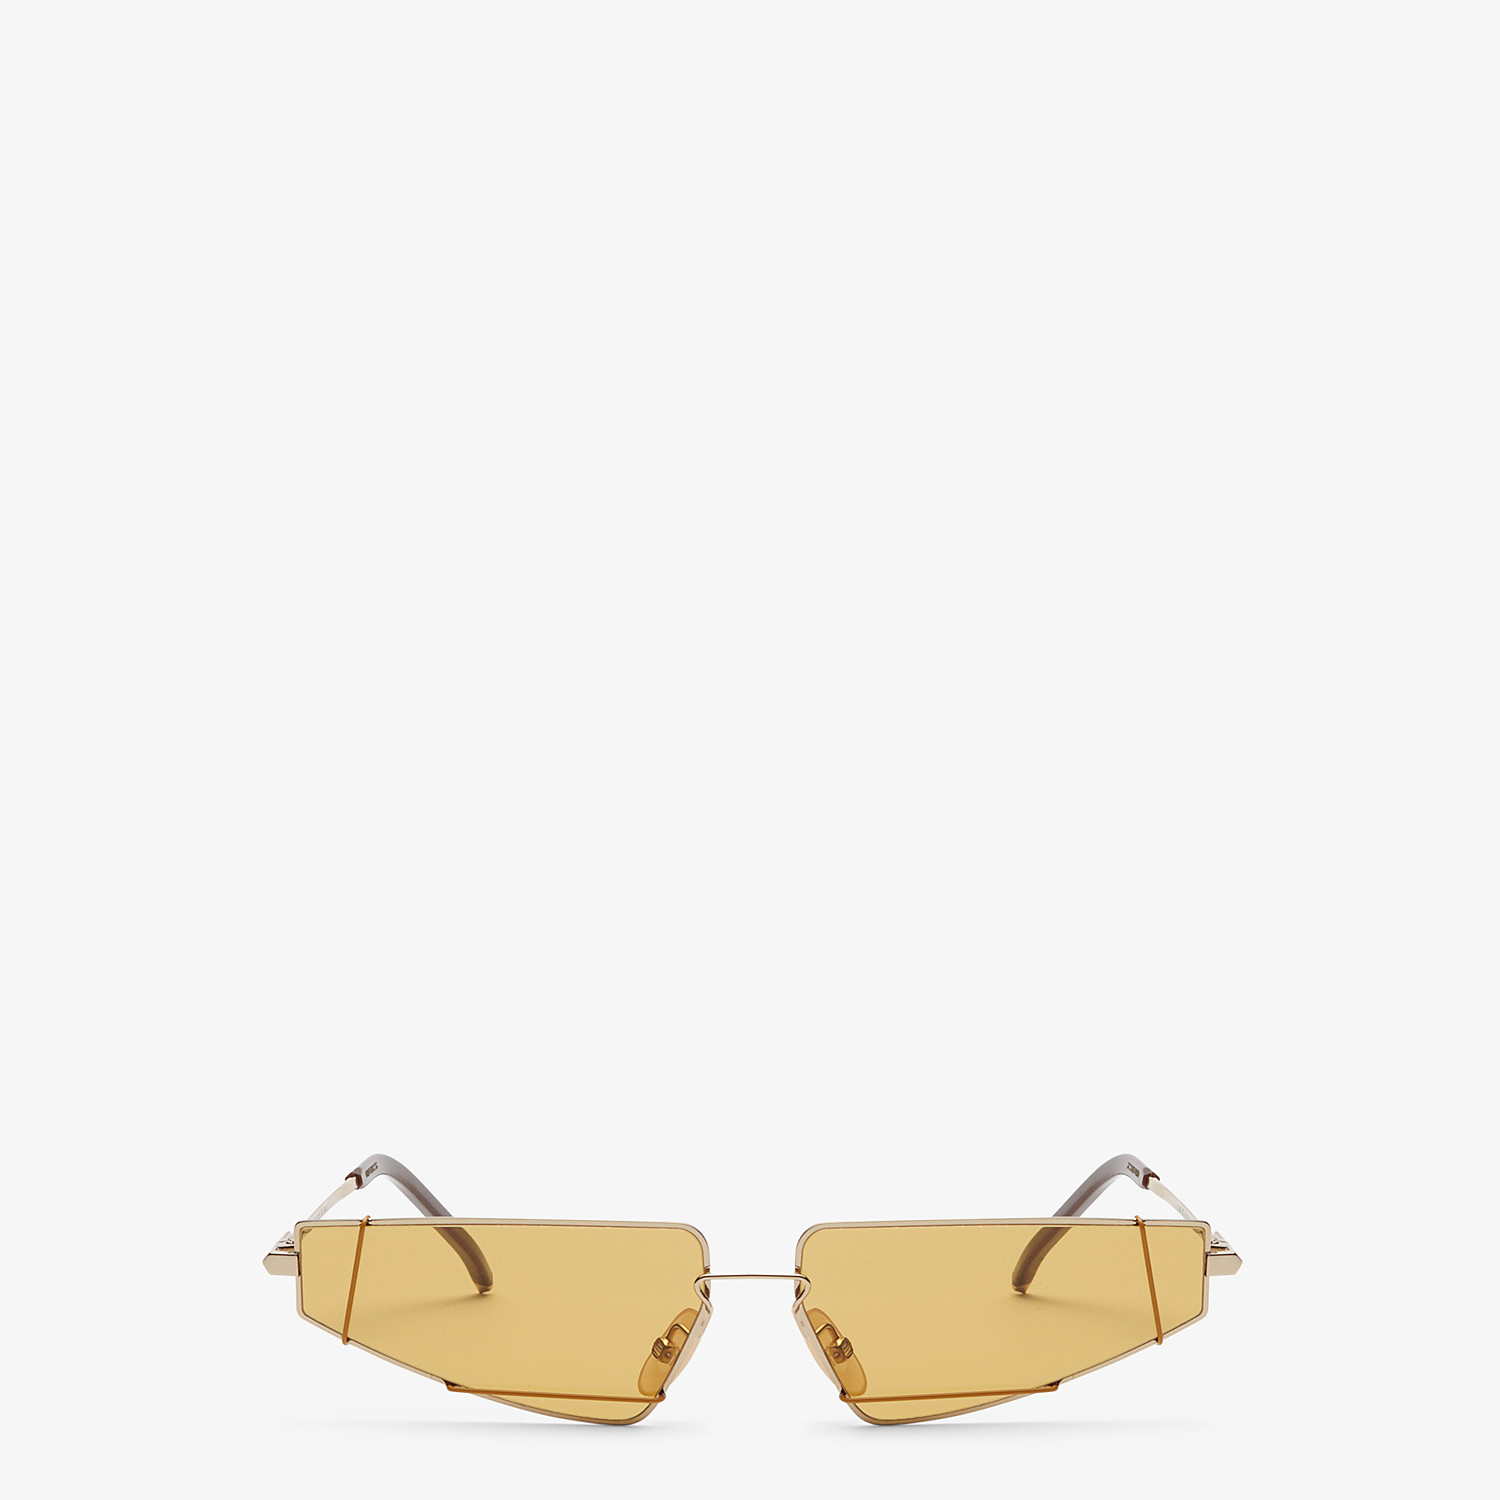 FENDI FENDIFIEND - Brown and gold sunglasses - view 1 detail